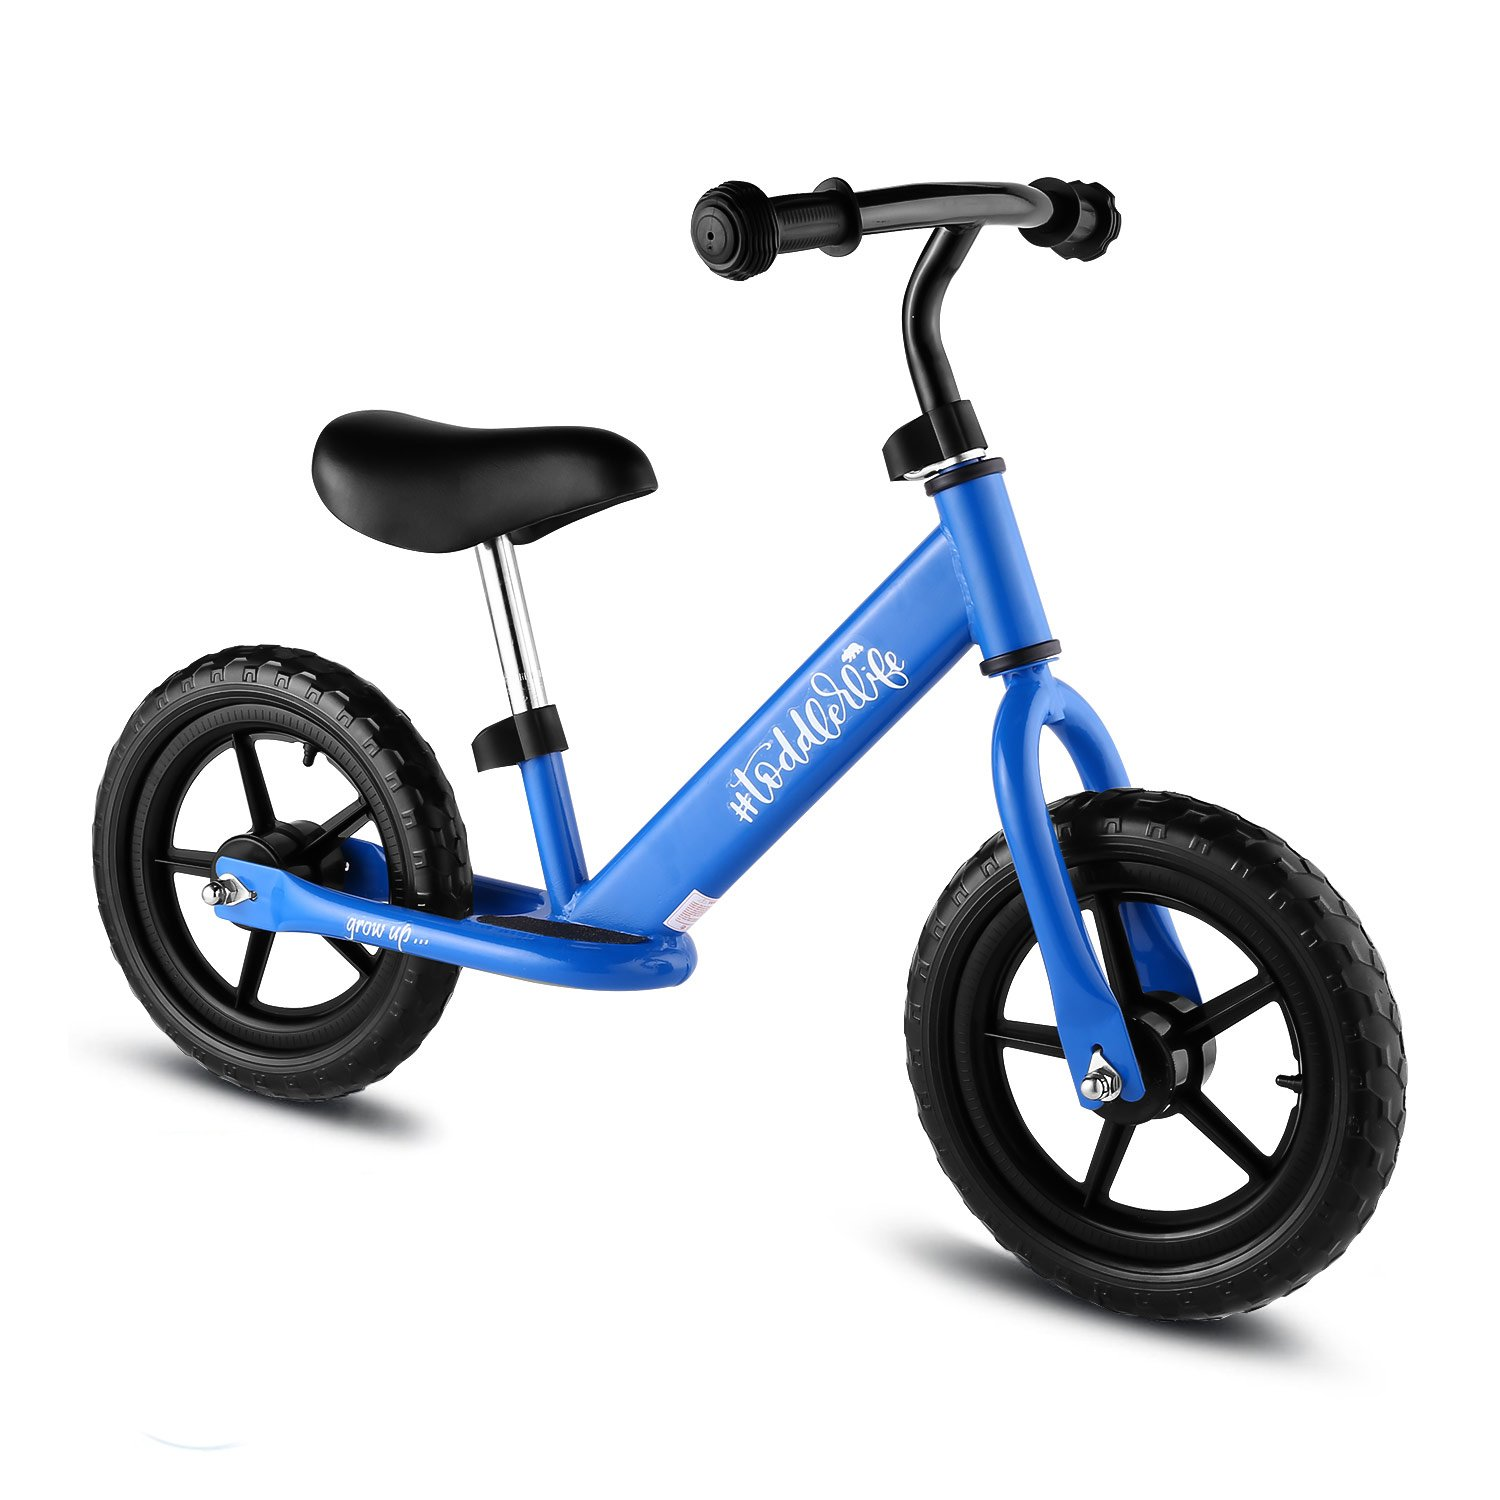 BIKFUN Balance Bike for Kids, No Pedal Traning Children Cycles with Adjustable Handlebar and Seat, Toddler Walking Bicycle Fits Ages 18 Months to 5 Years (Classic-Blue)